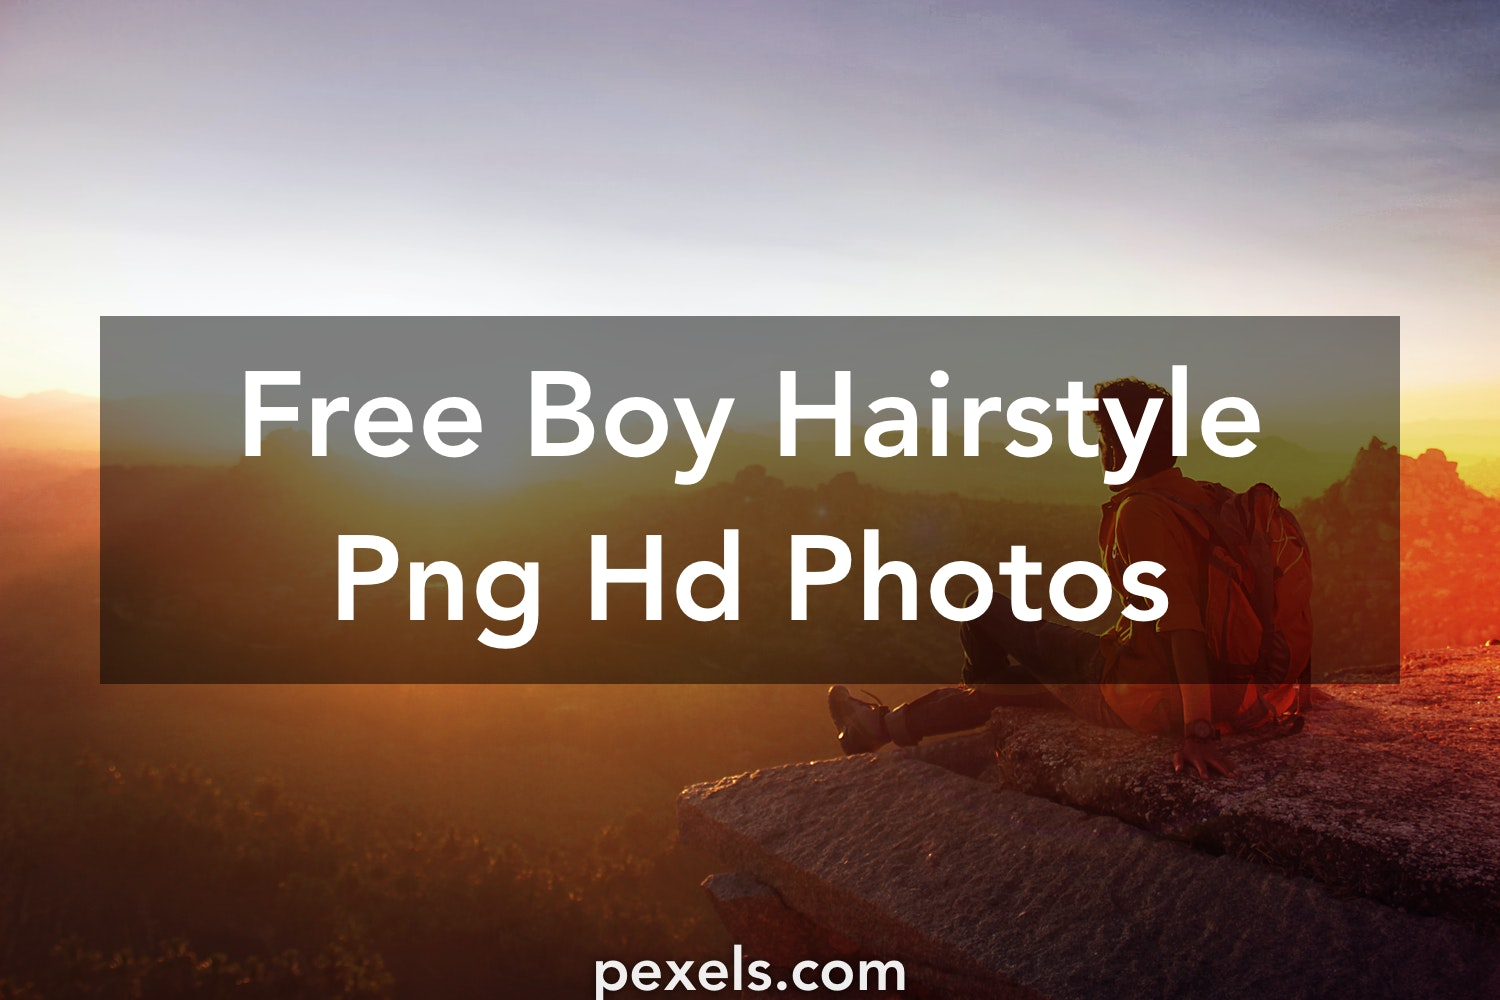 1000 Beautiful Boy Hairstyle Png Hd Photos Pexels Free Stock Photos